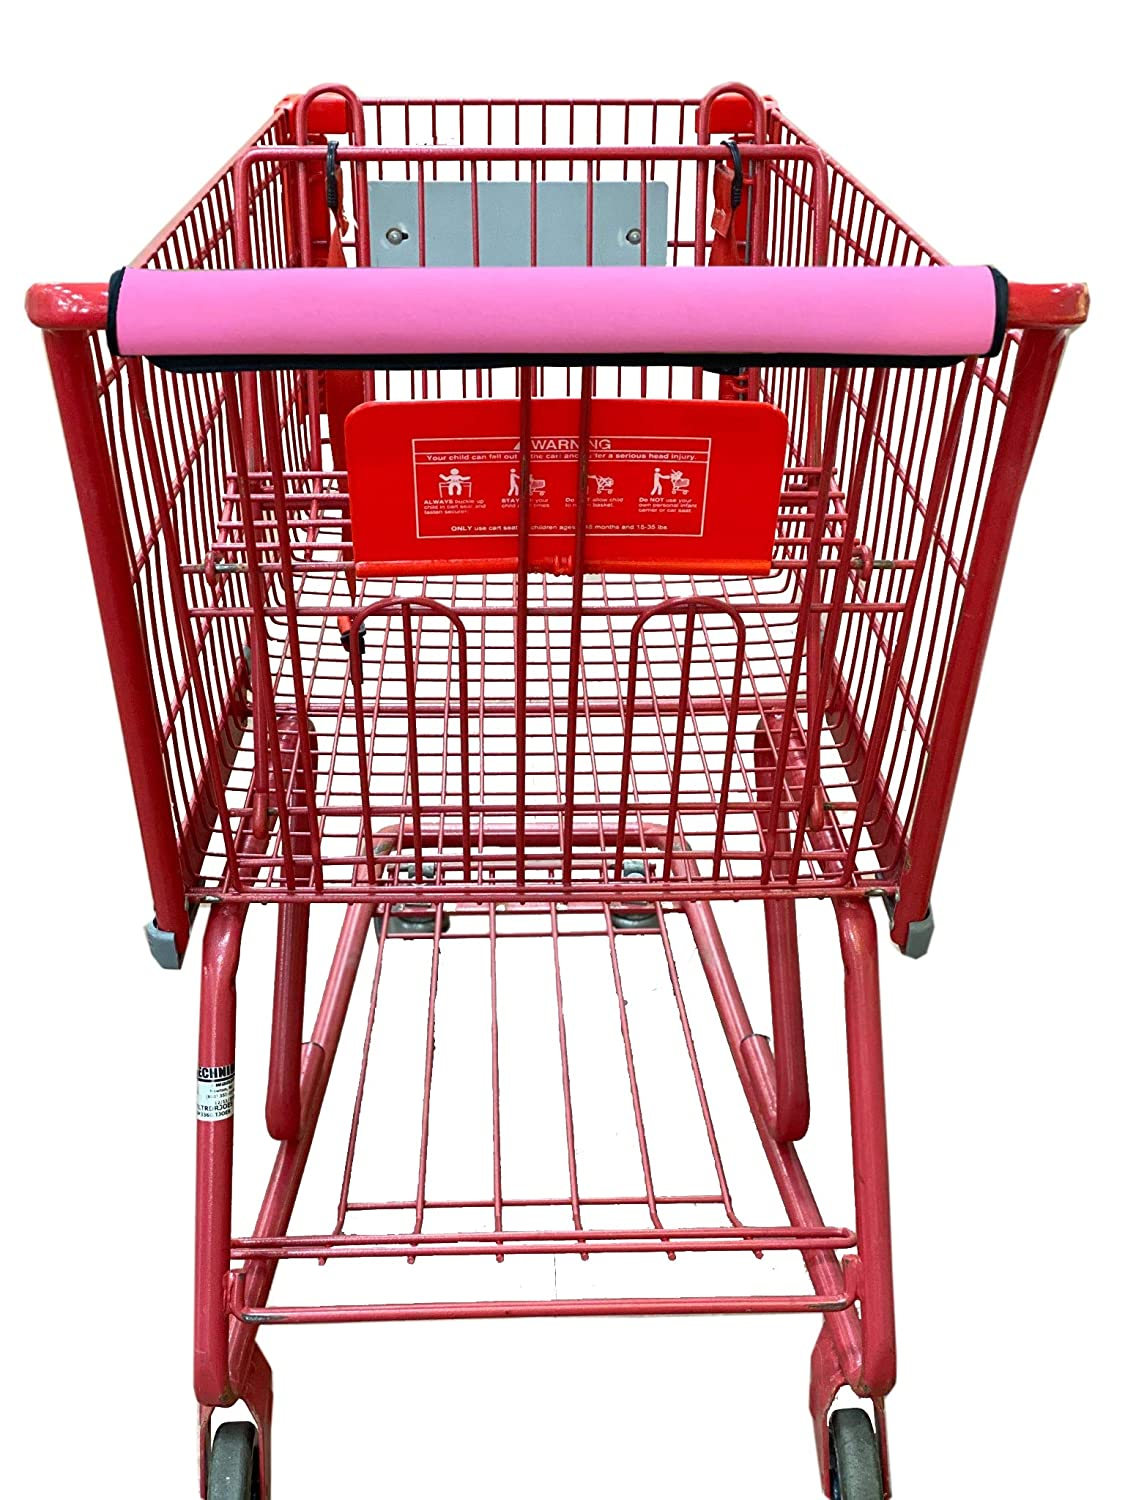 Shopping Cart Handle Cover by TNP, Cover for Handles | Safe and Eco Friendly | Reuseable | 17 Inches